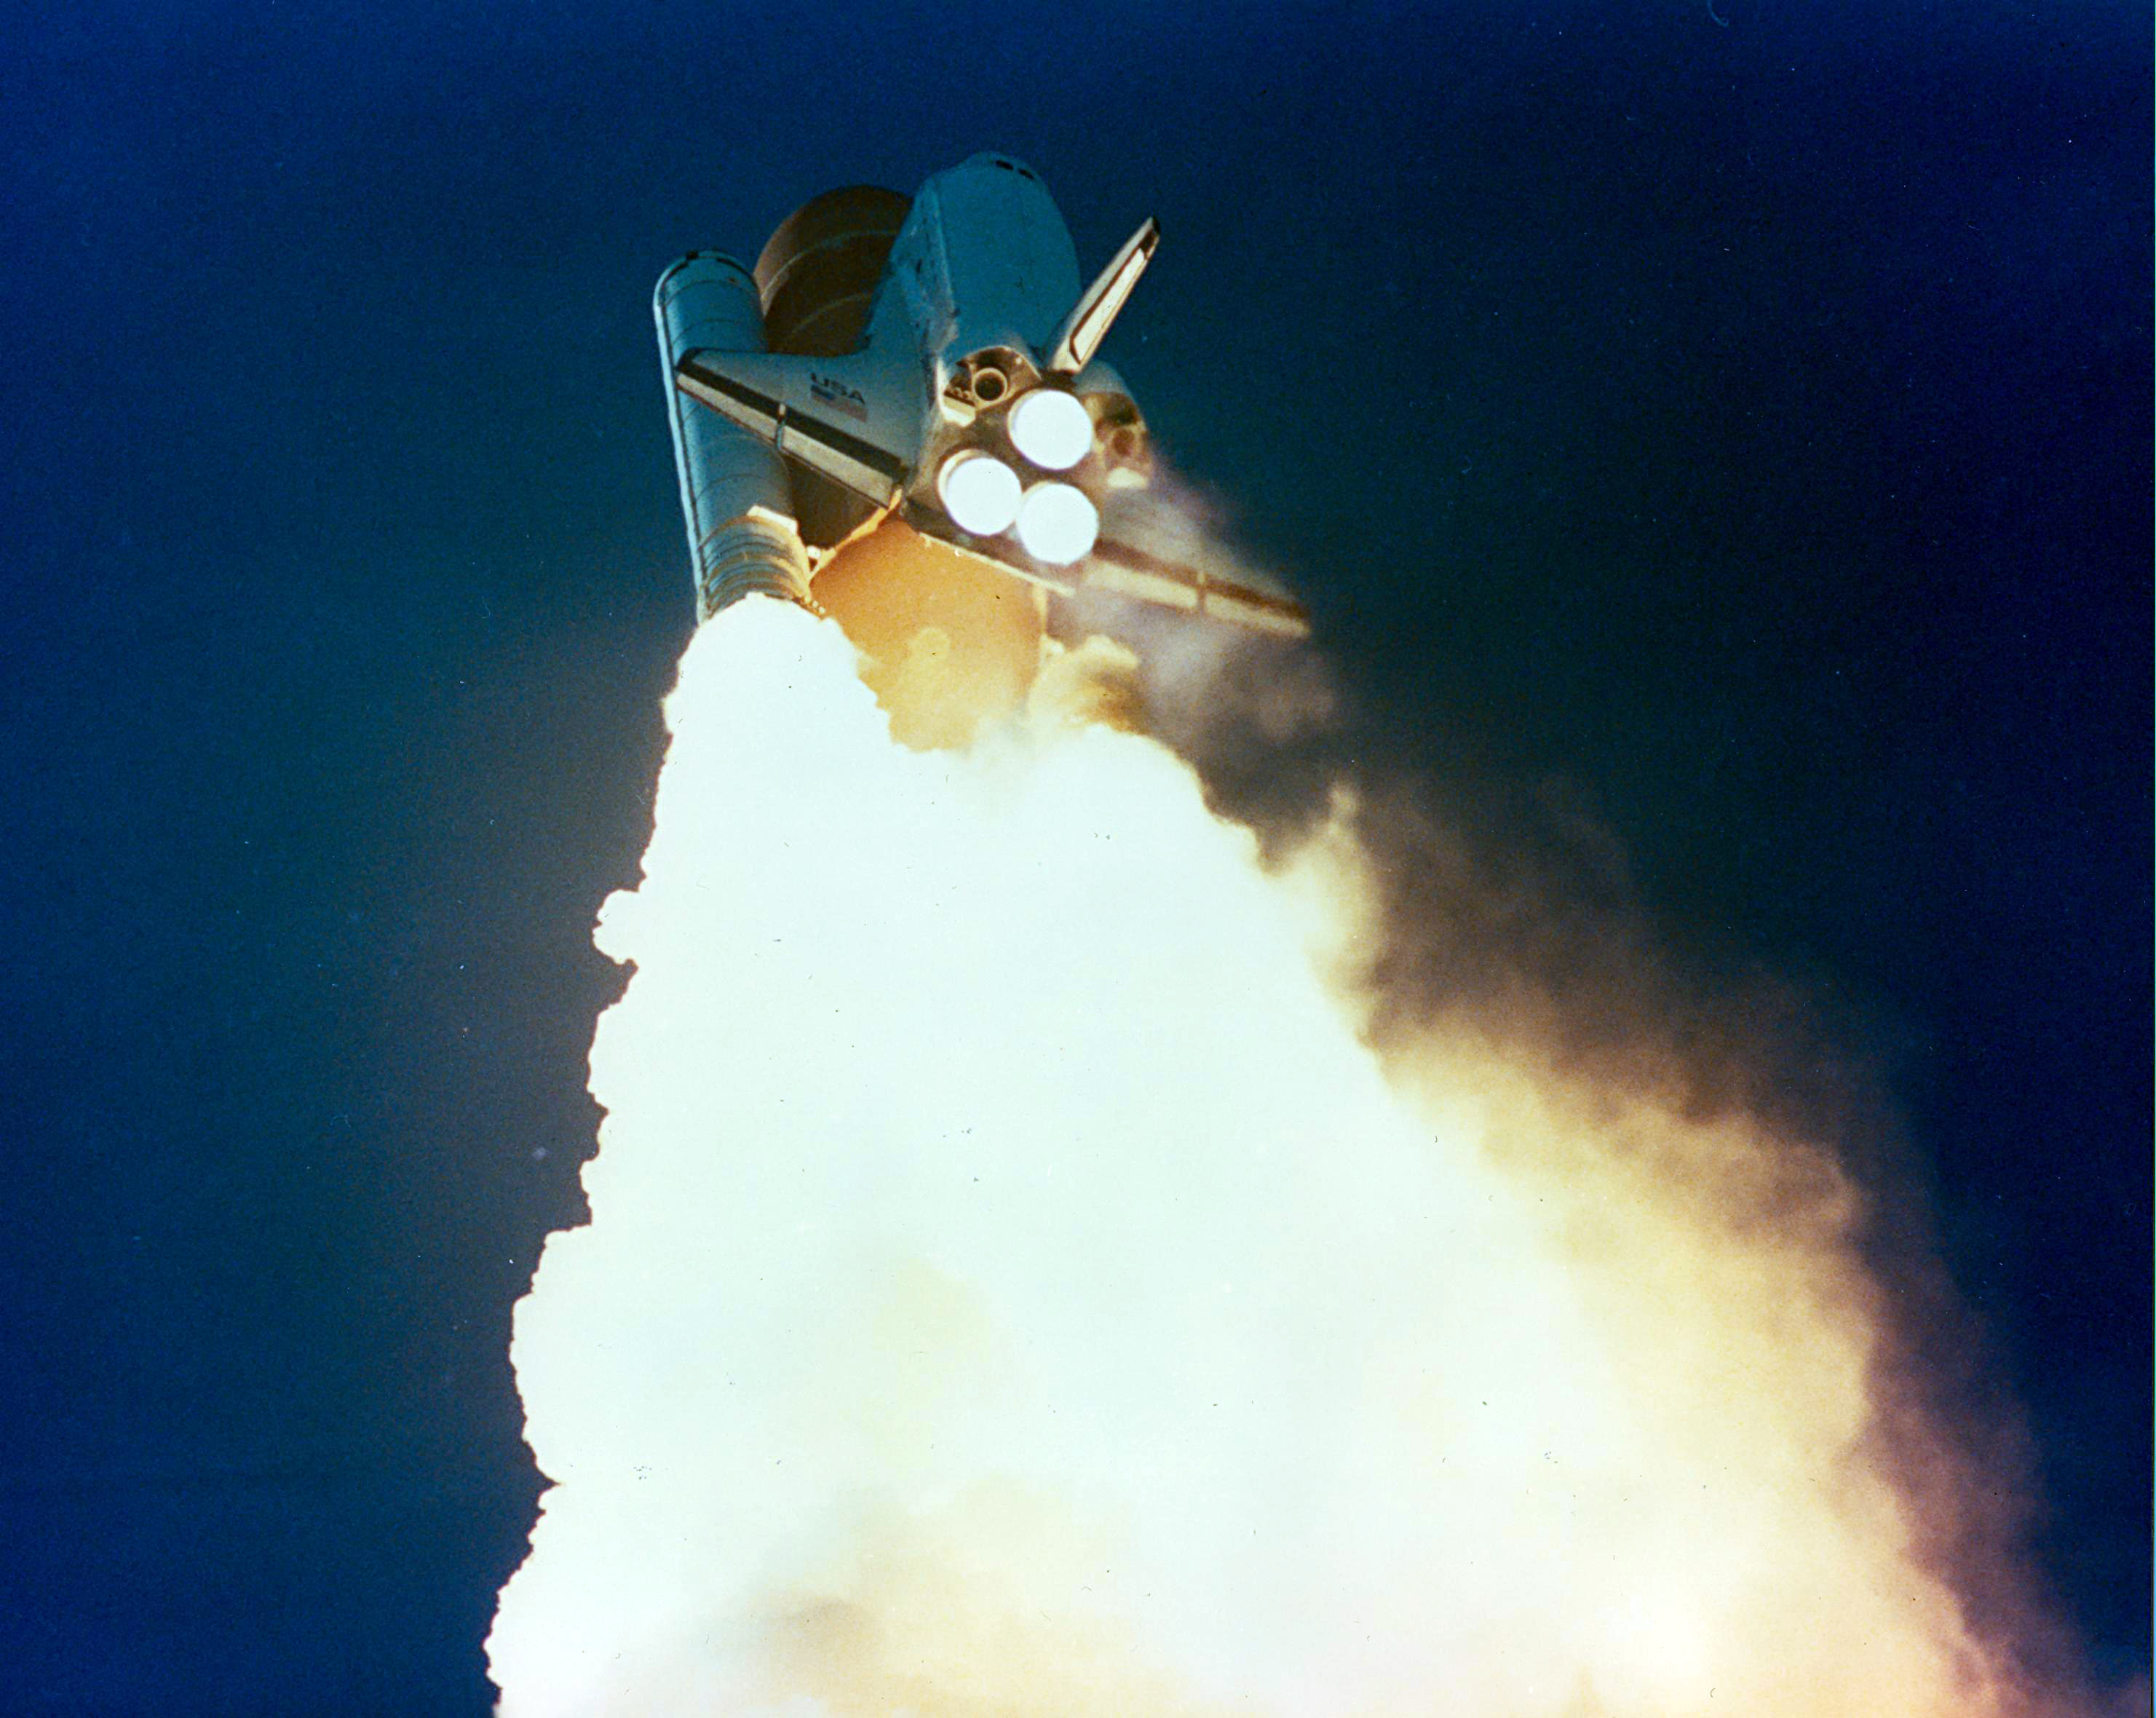 space shuttle explosion 1985 - photo #32